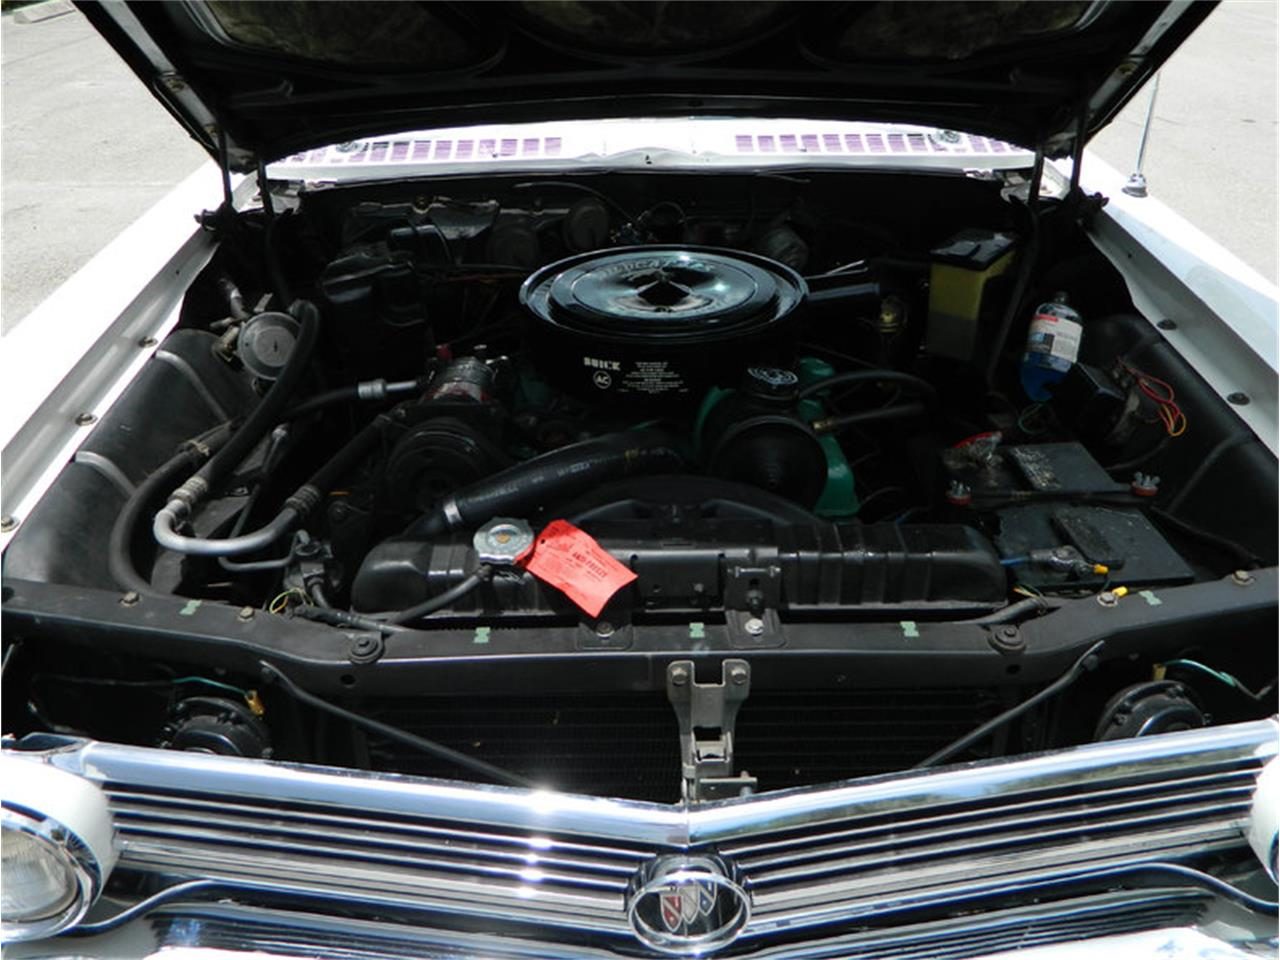 Large Picture of 1962 Buick Electra 225 located in Florida Offered by International Auto Group - M8SN